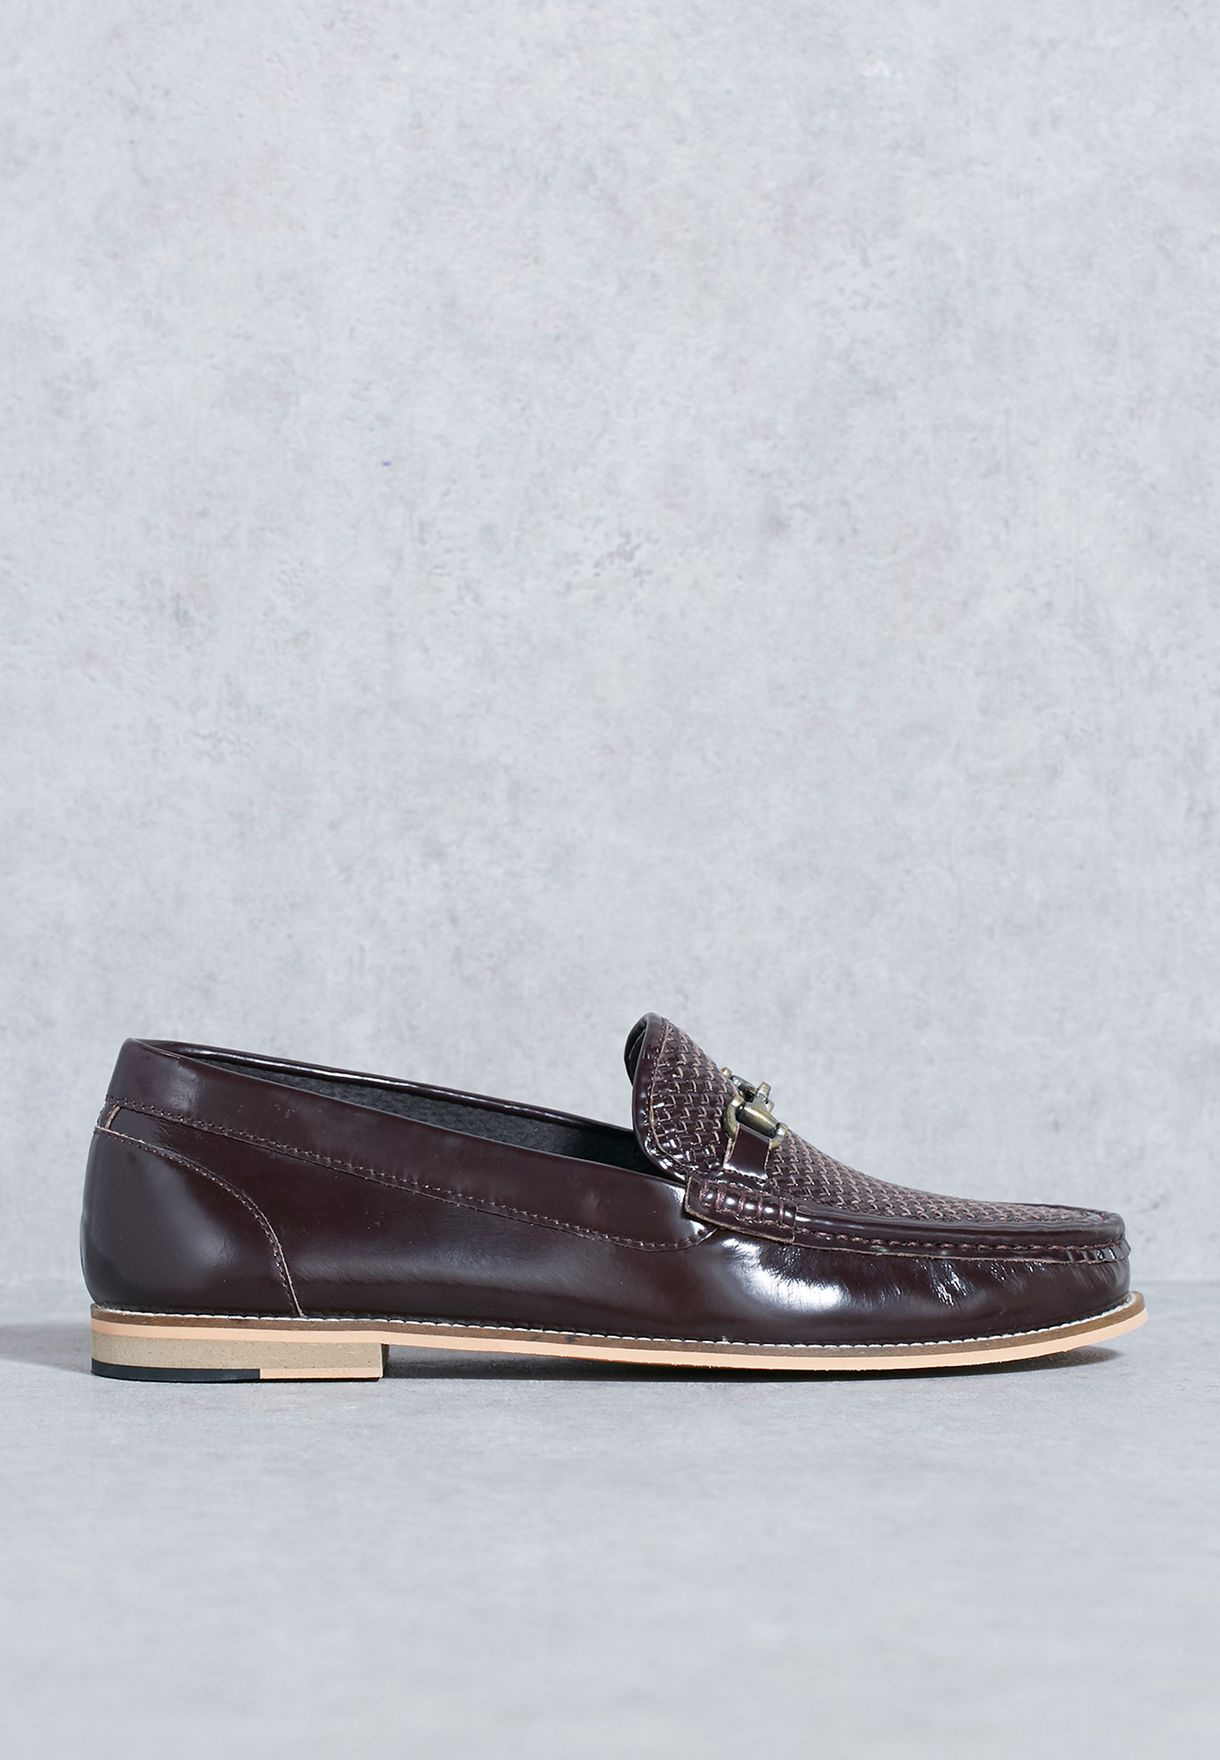 99a189b7a9e Shop Topman browns Weave Loafers 76F42NBUR for Men in Bahrain ...